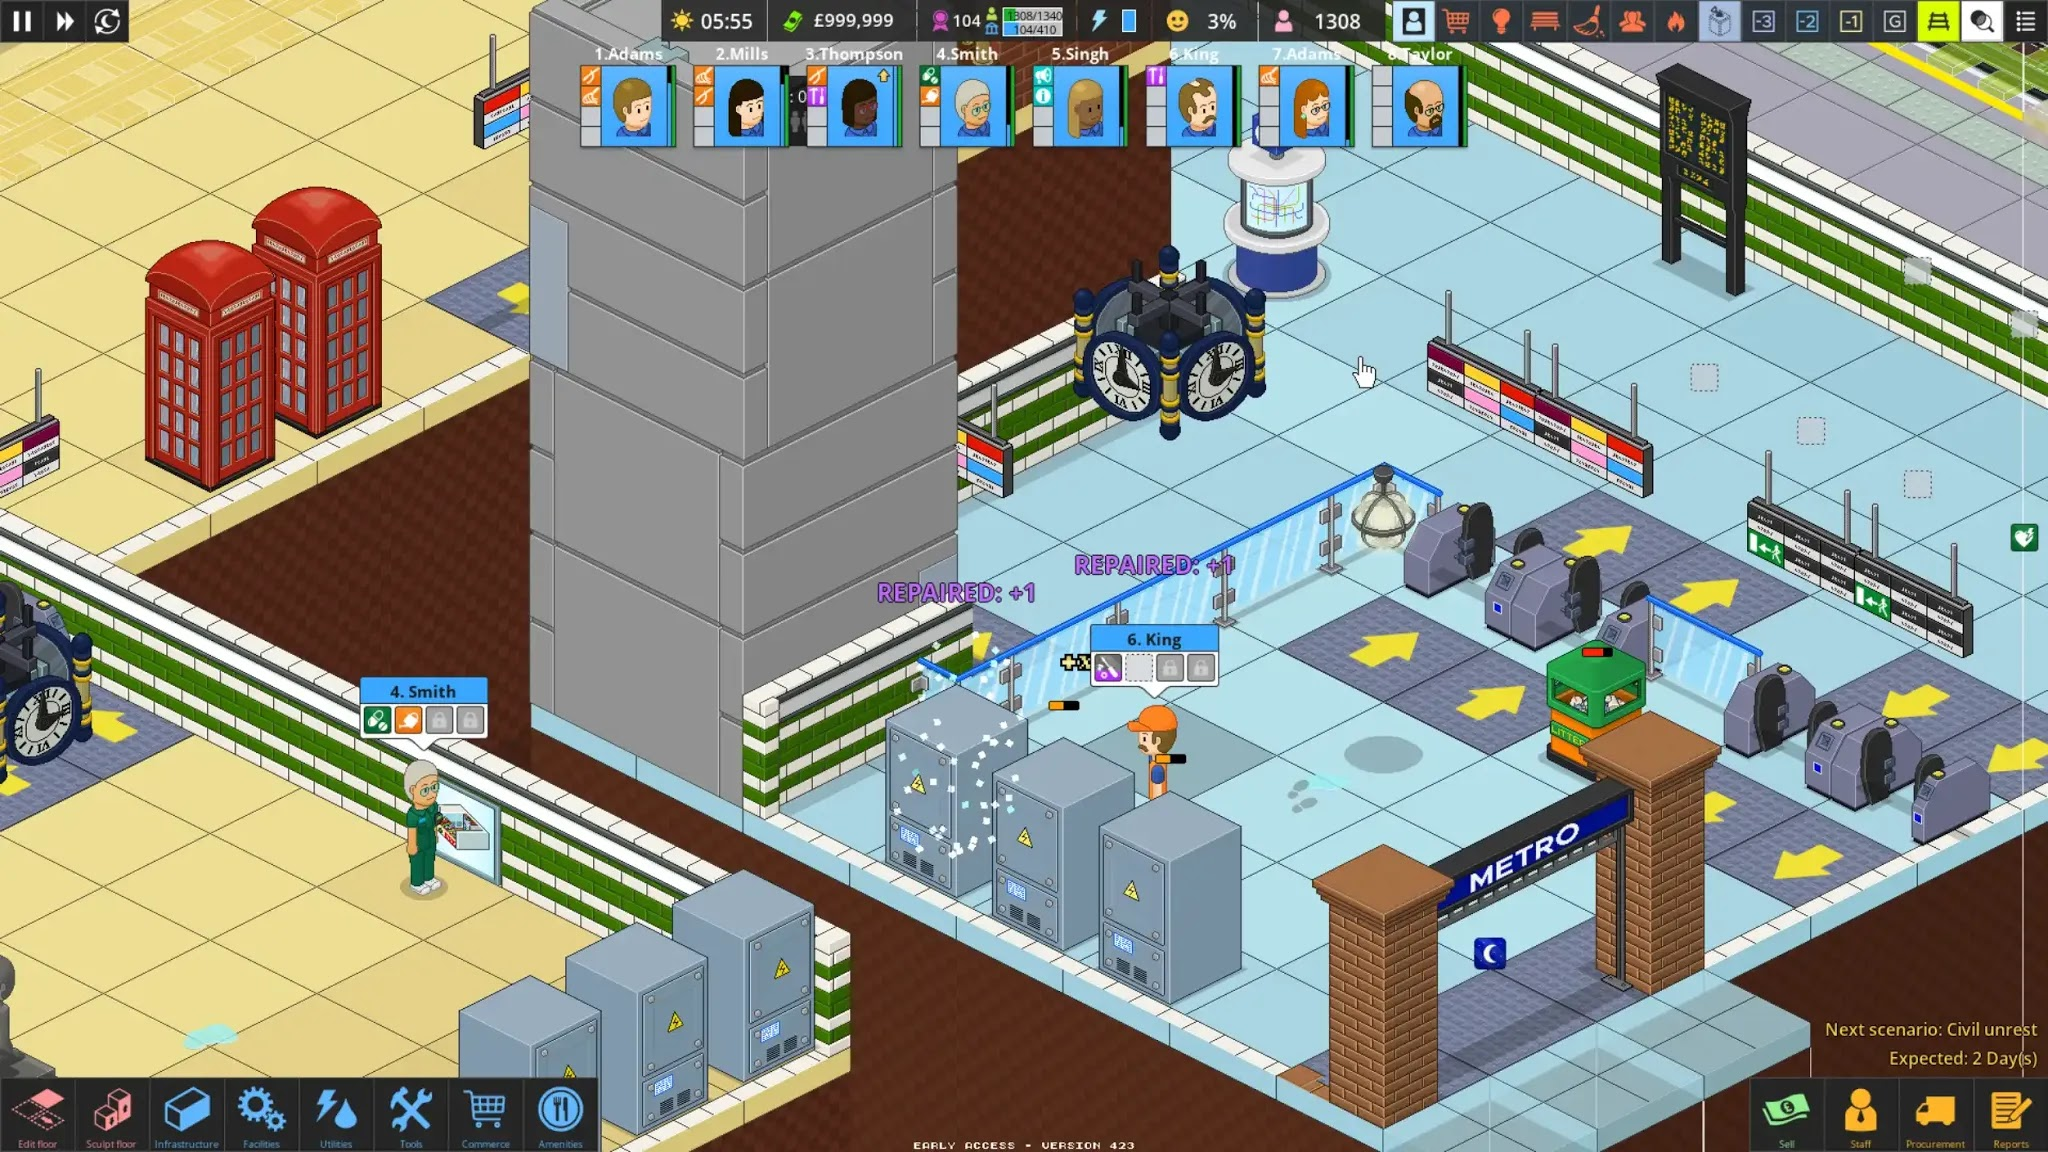 Medic and Janitor in Overcrowd